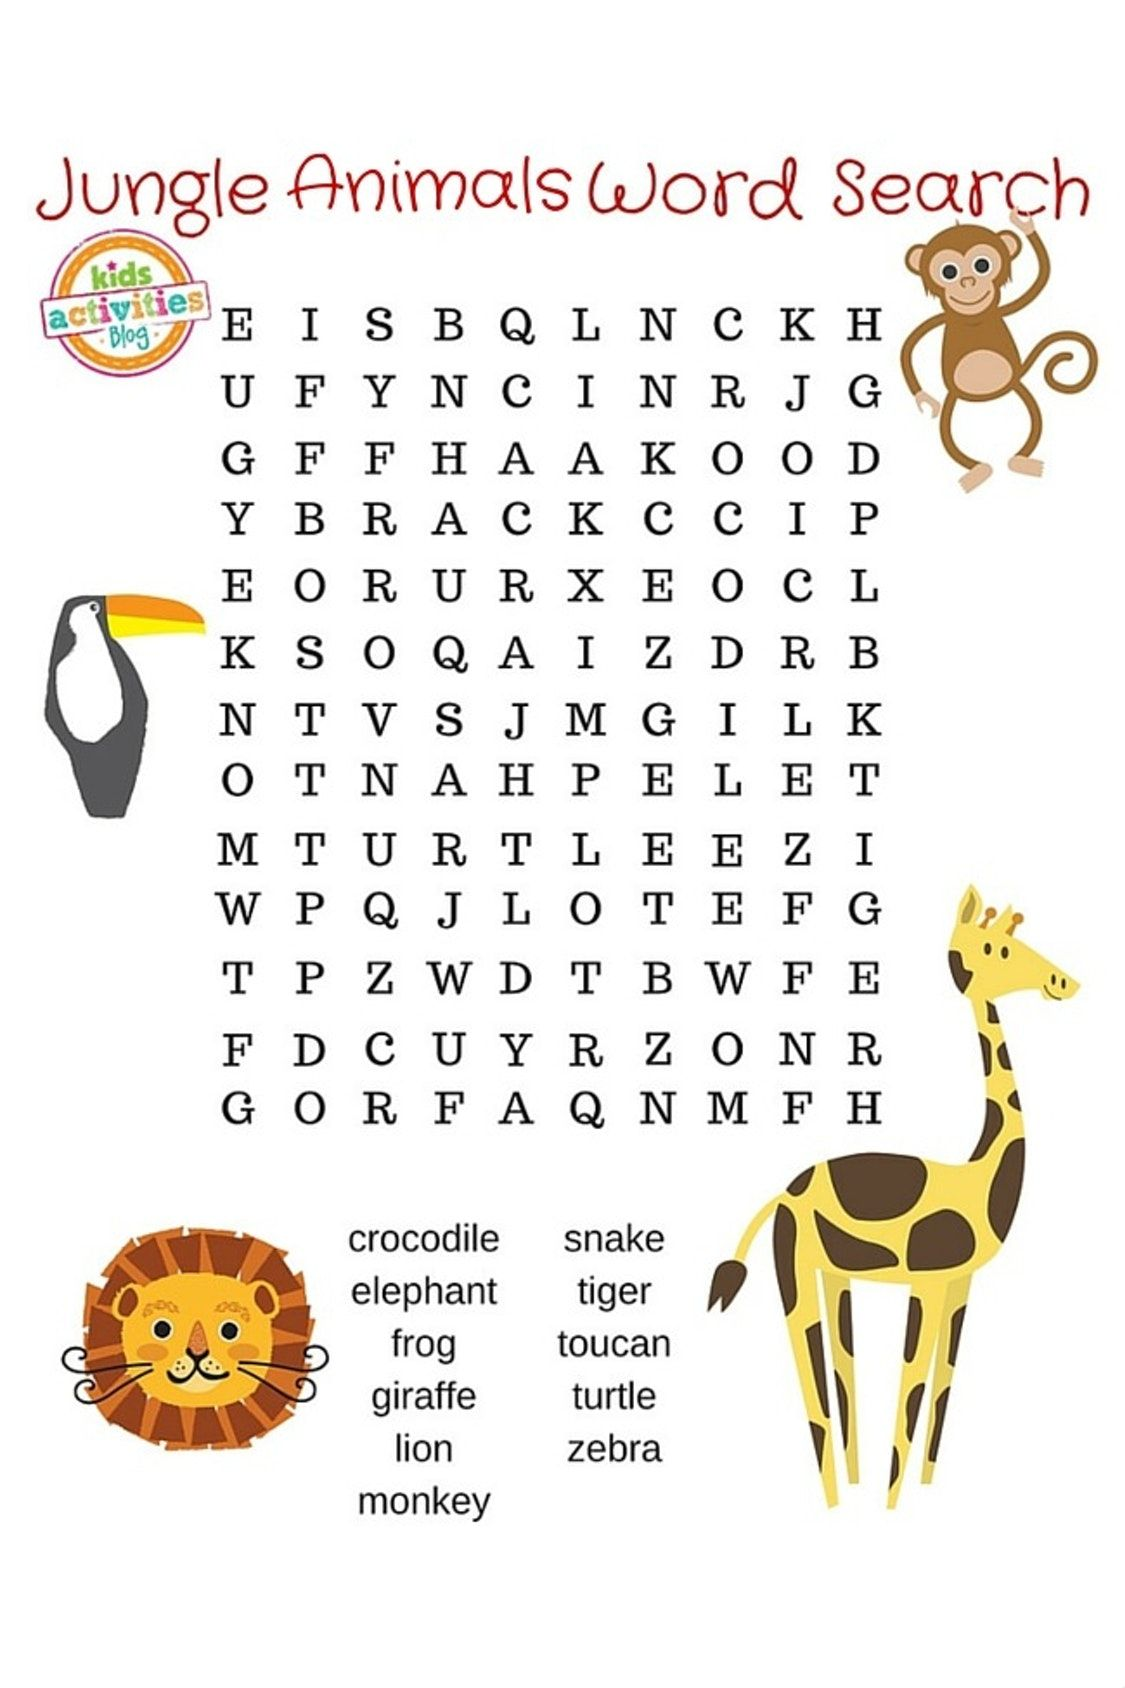 Free Printable Jungle Animal Word Search Puzzle Kids Activities Blog Jungle Theme Activities Zoo Activities Animals For Kids [ 1688 x 1125 Pixel ]